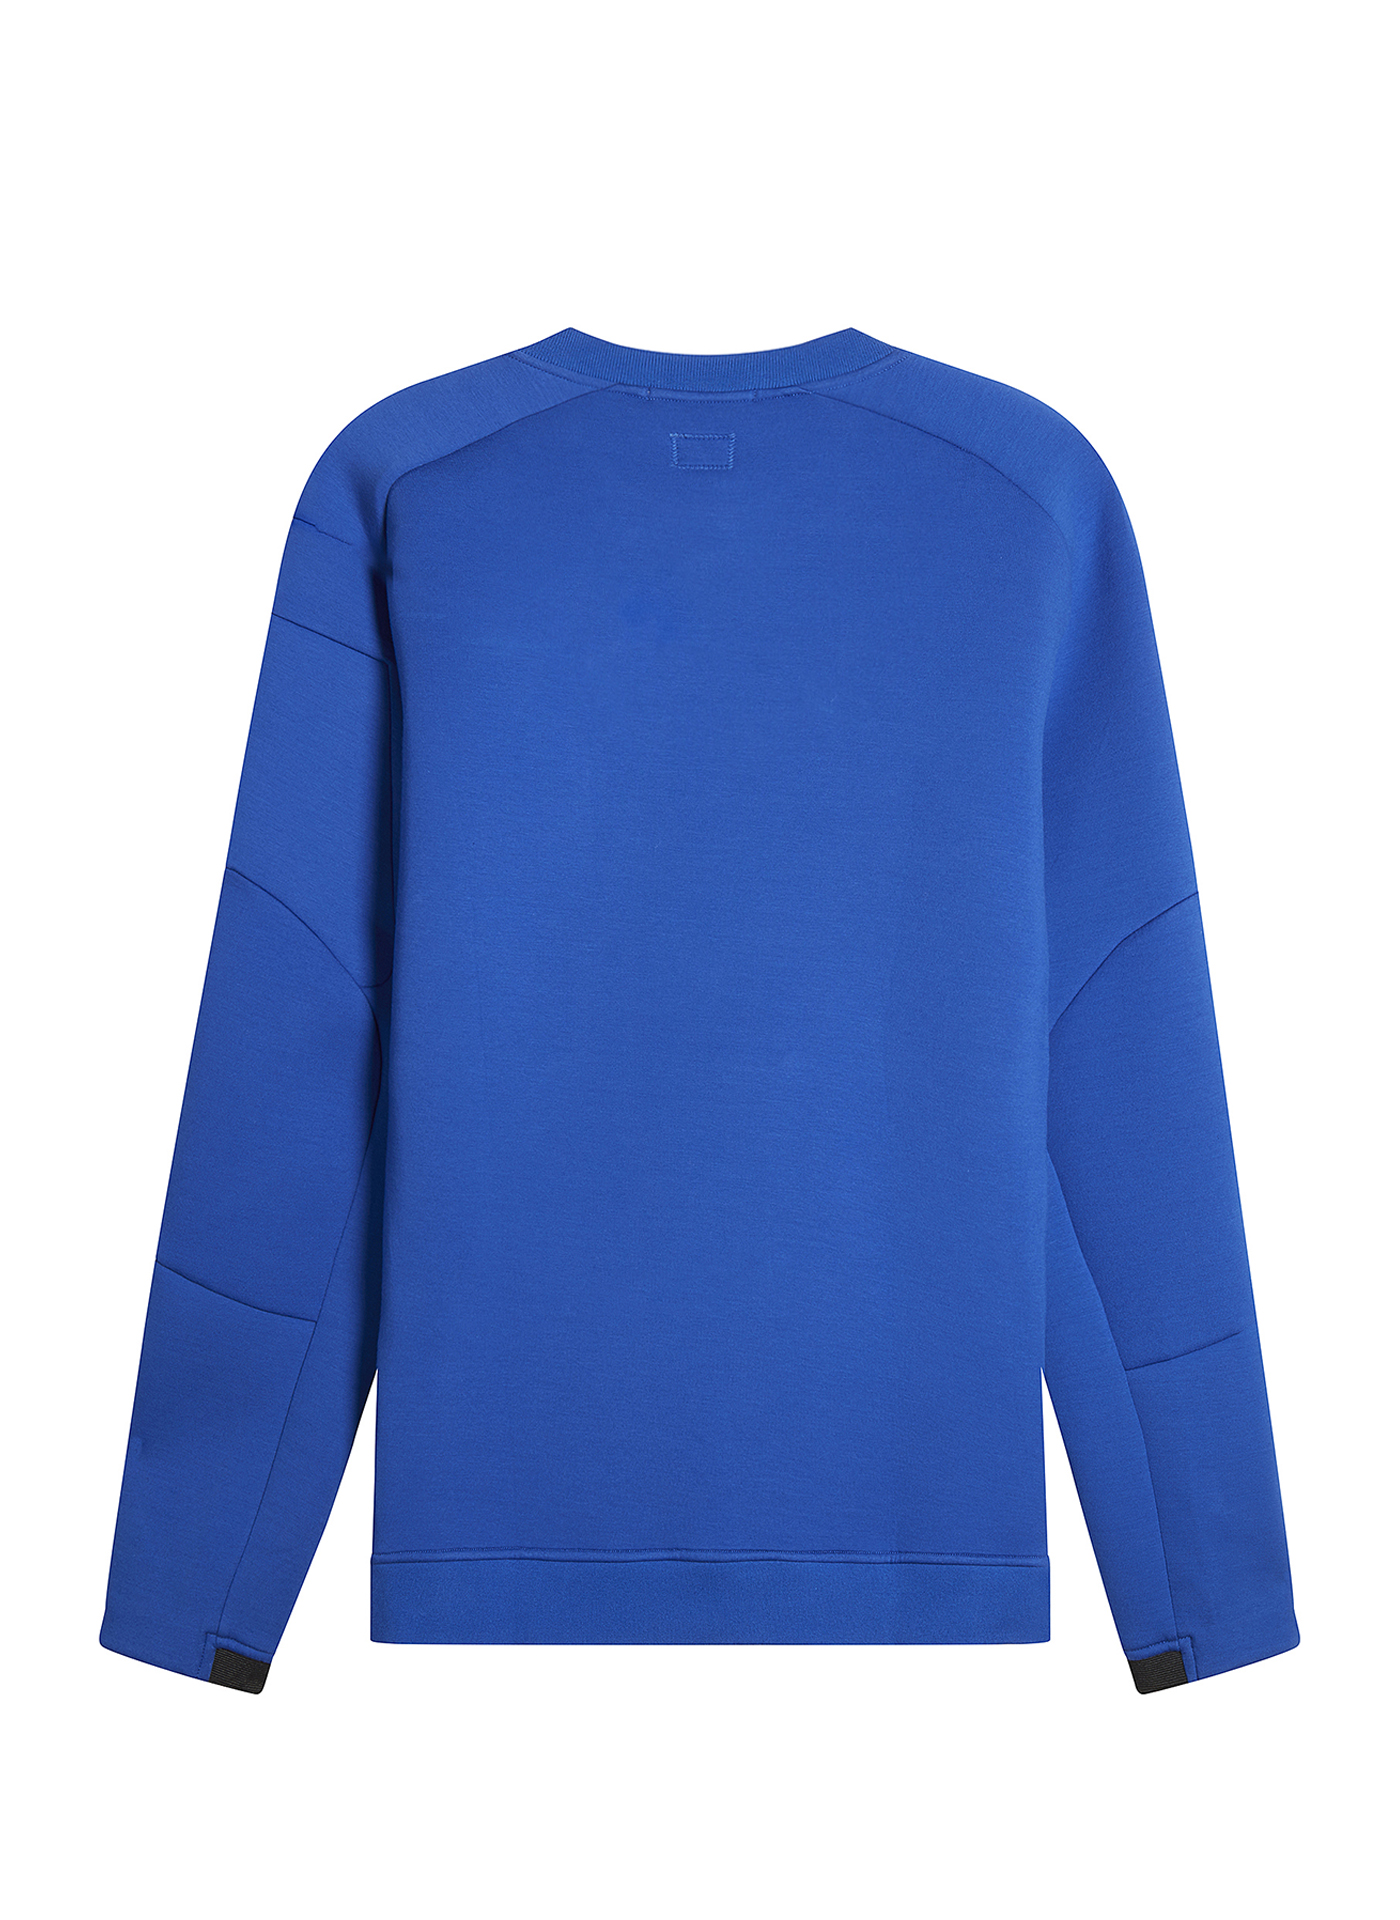 Back side of the blue C.P. Company Jumper on white background